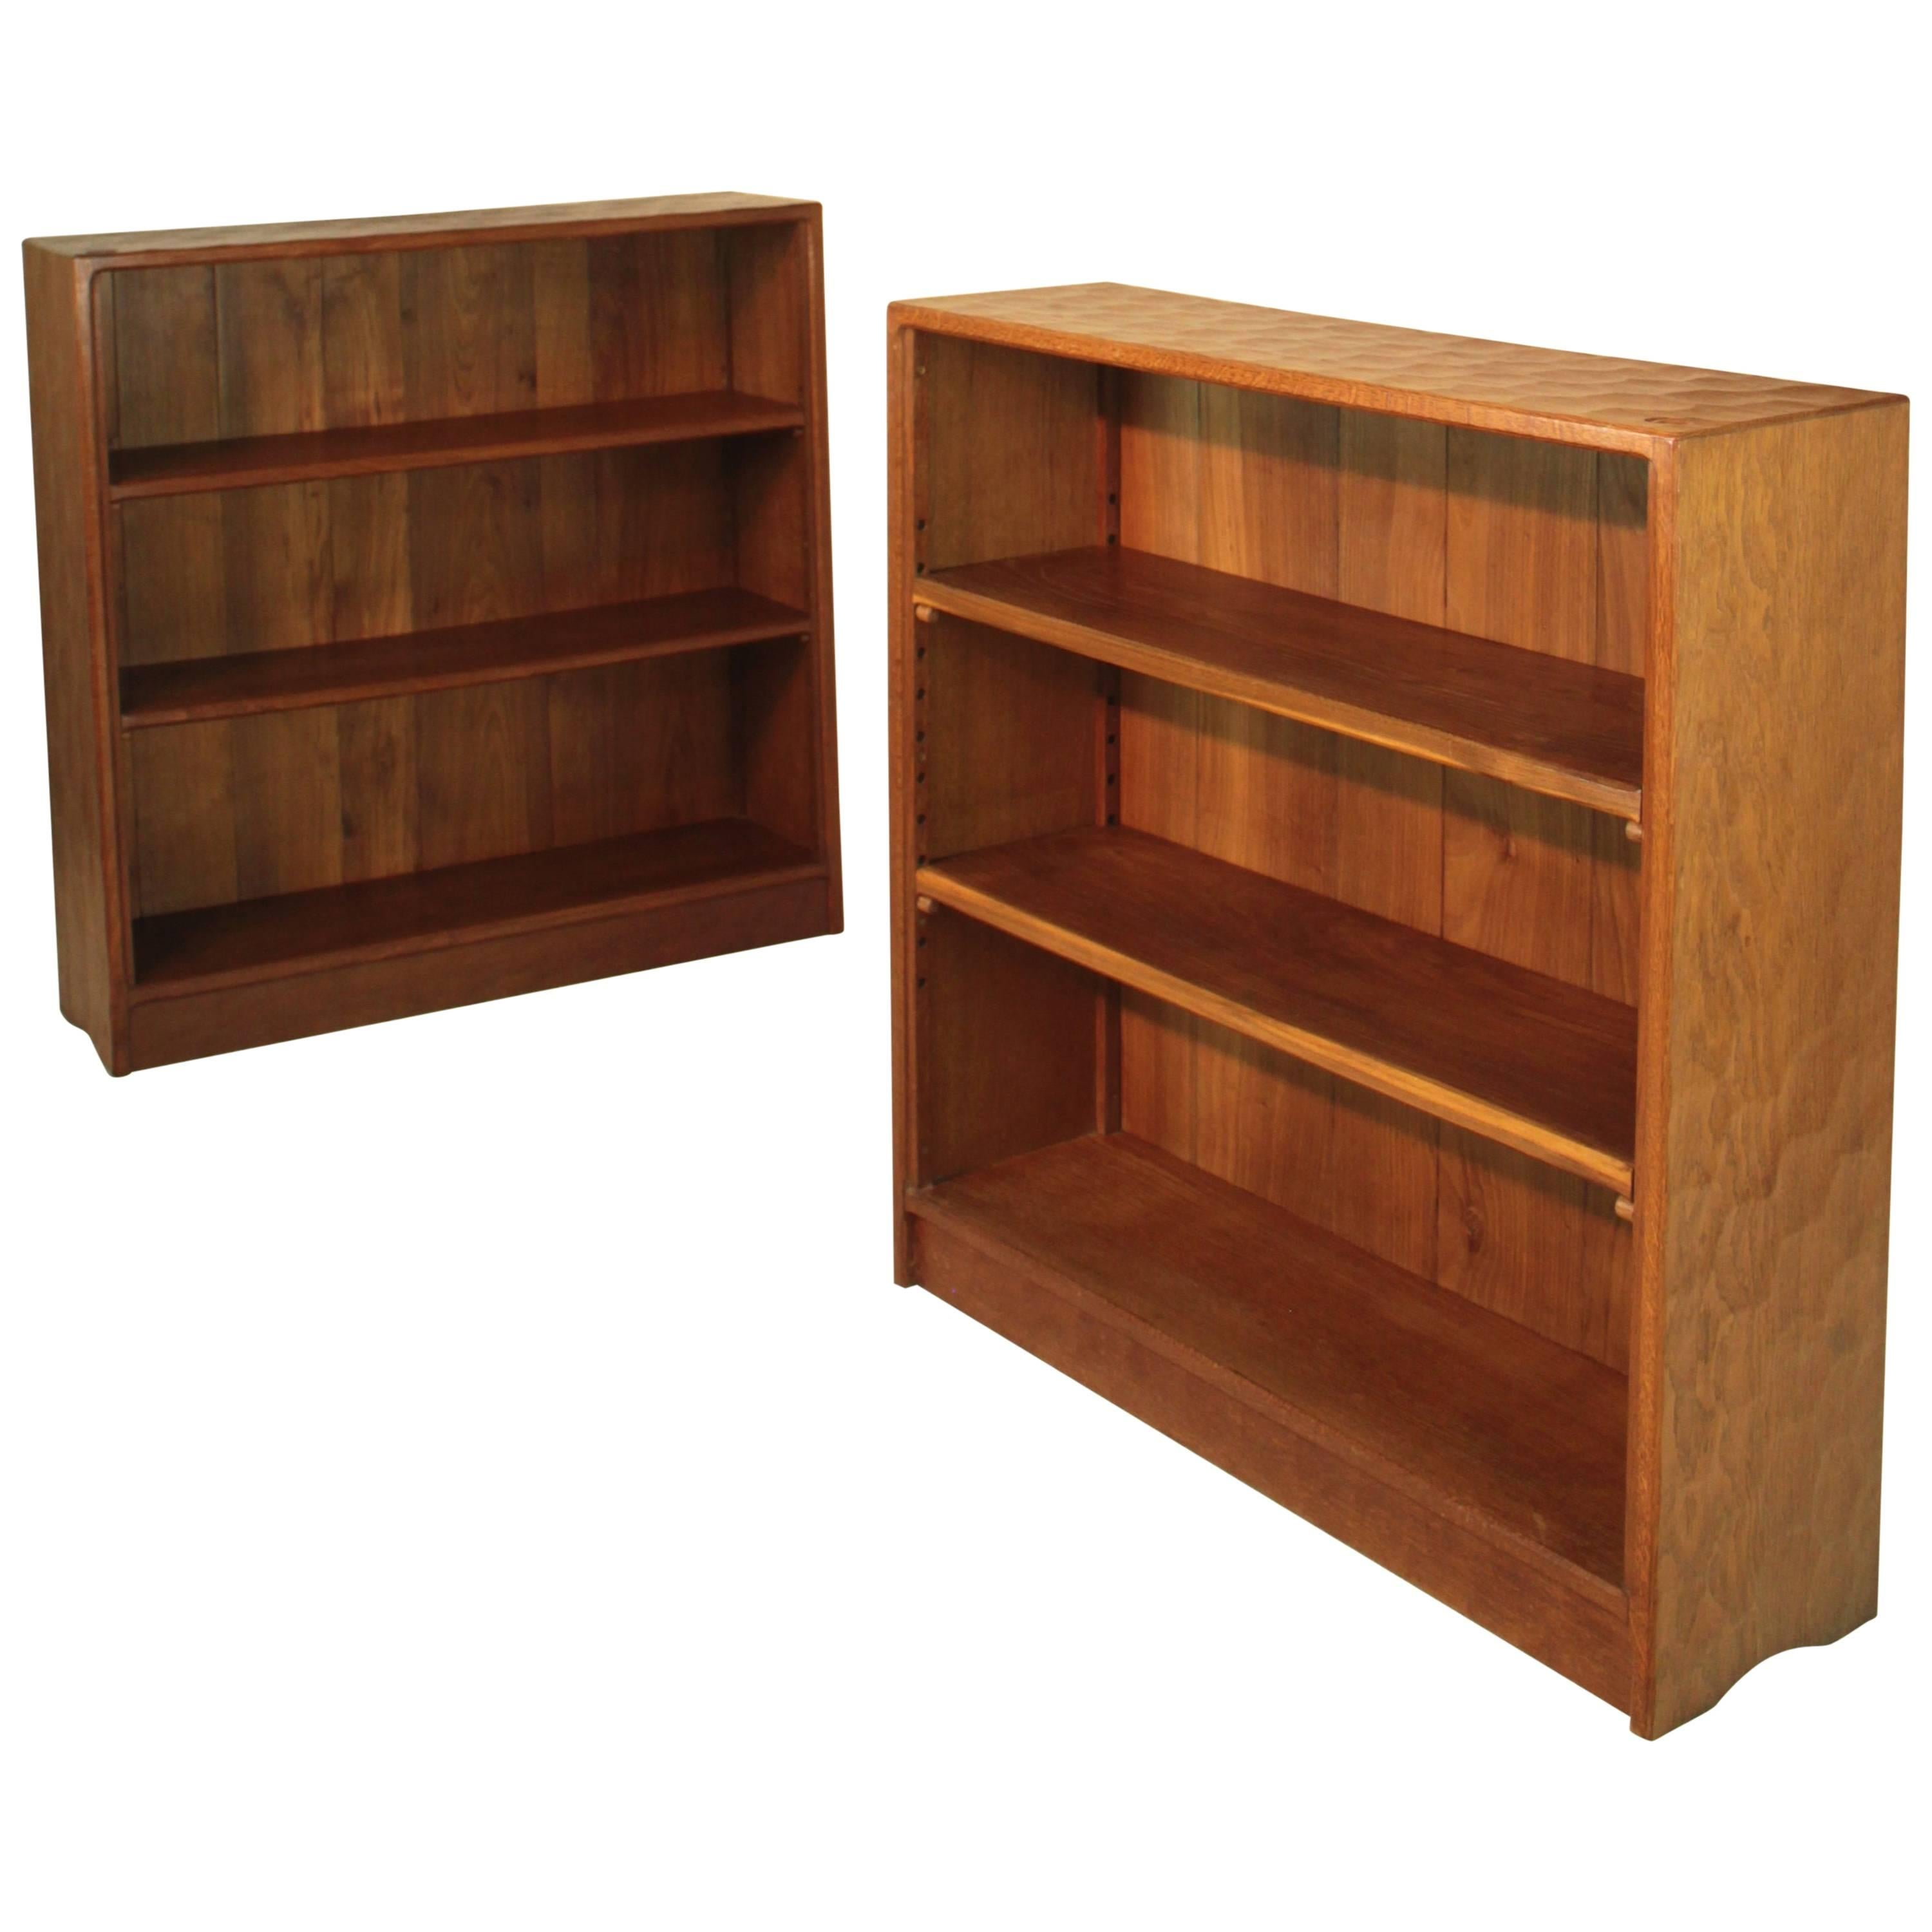 Antiques Antique Mahogany Waterfall Open Bookcase Bookshelves To Adopt Advanced Technology